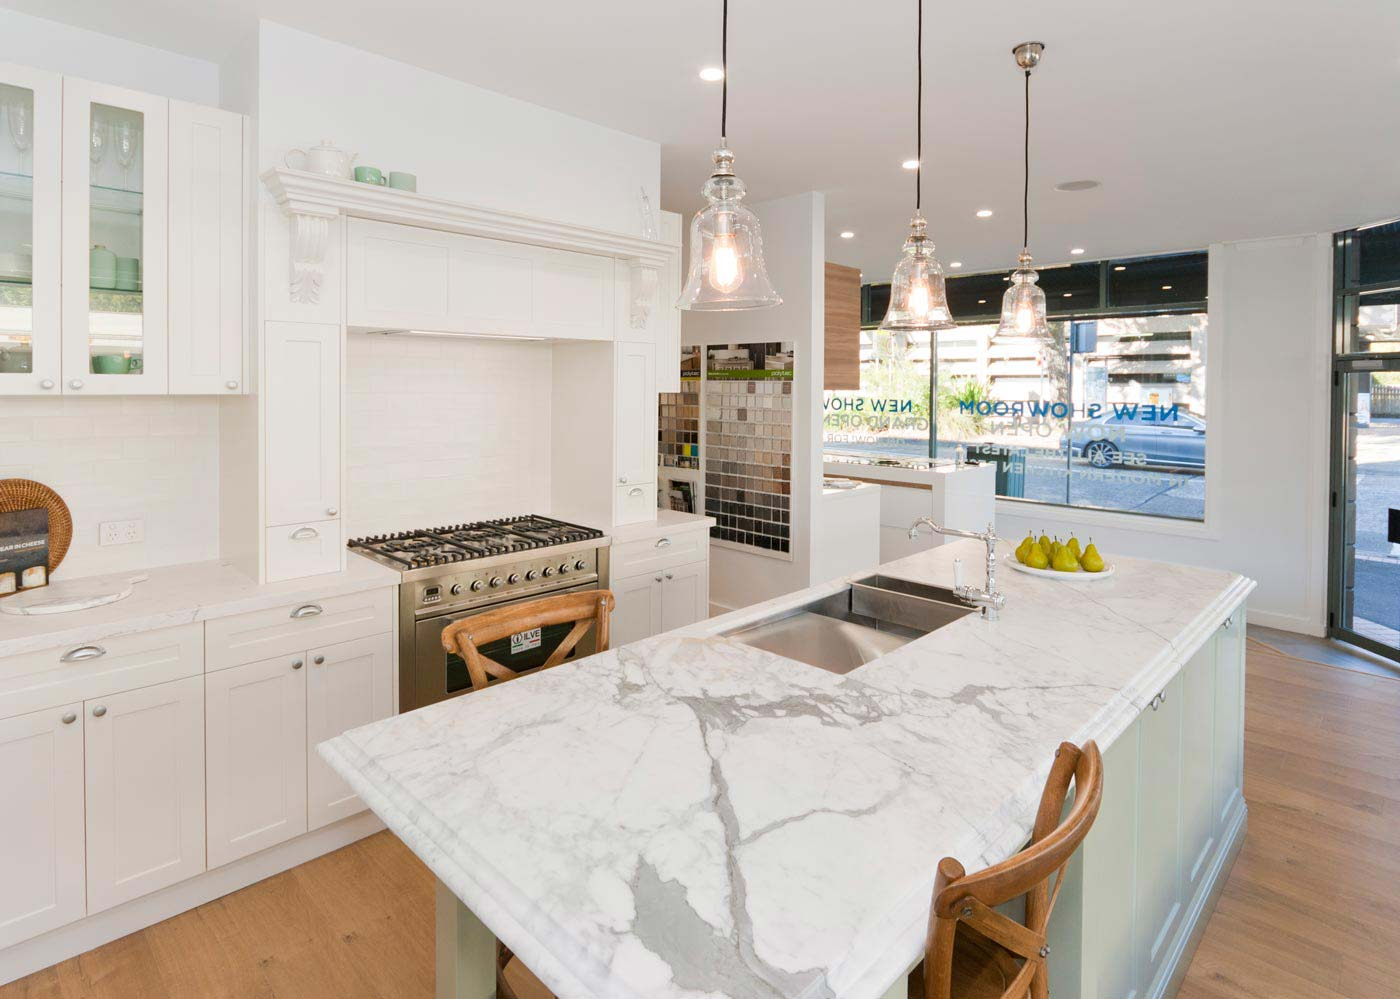 Exceptionnel French Provincial Kitchen Design Featuring Dulux Whisper White Poly Shaker  Doors, Elba Marble Benchtop,